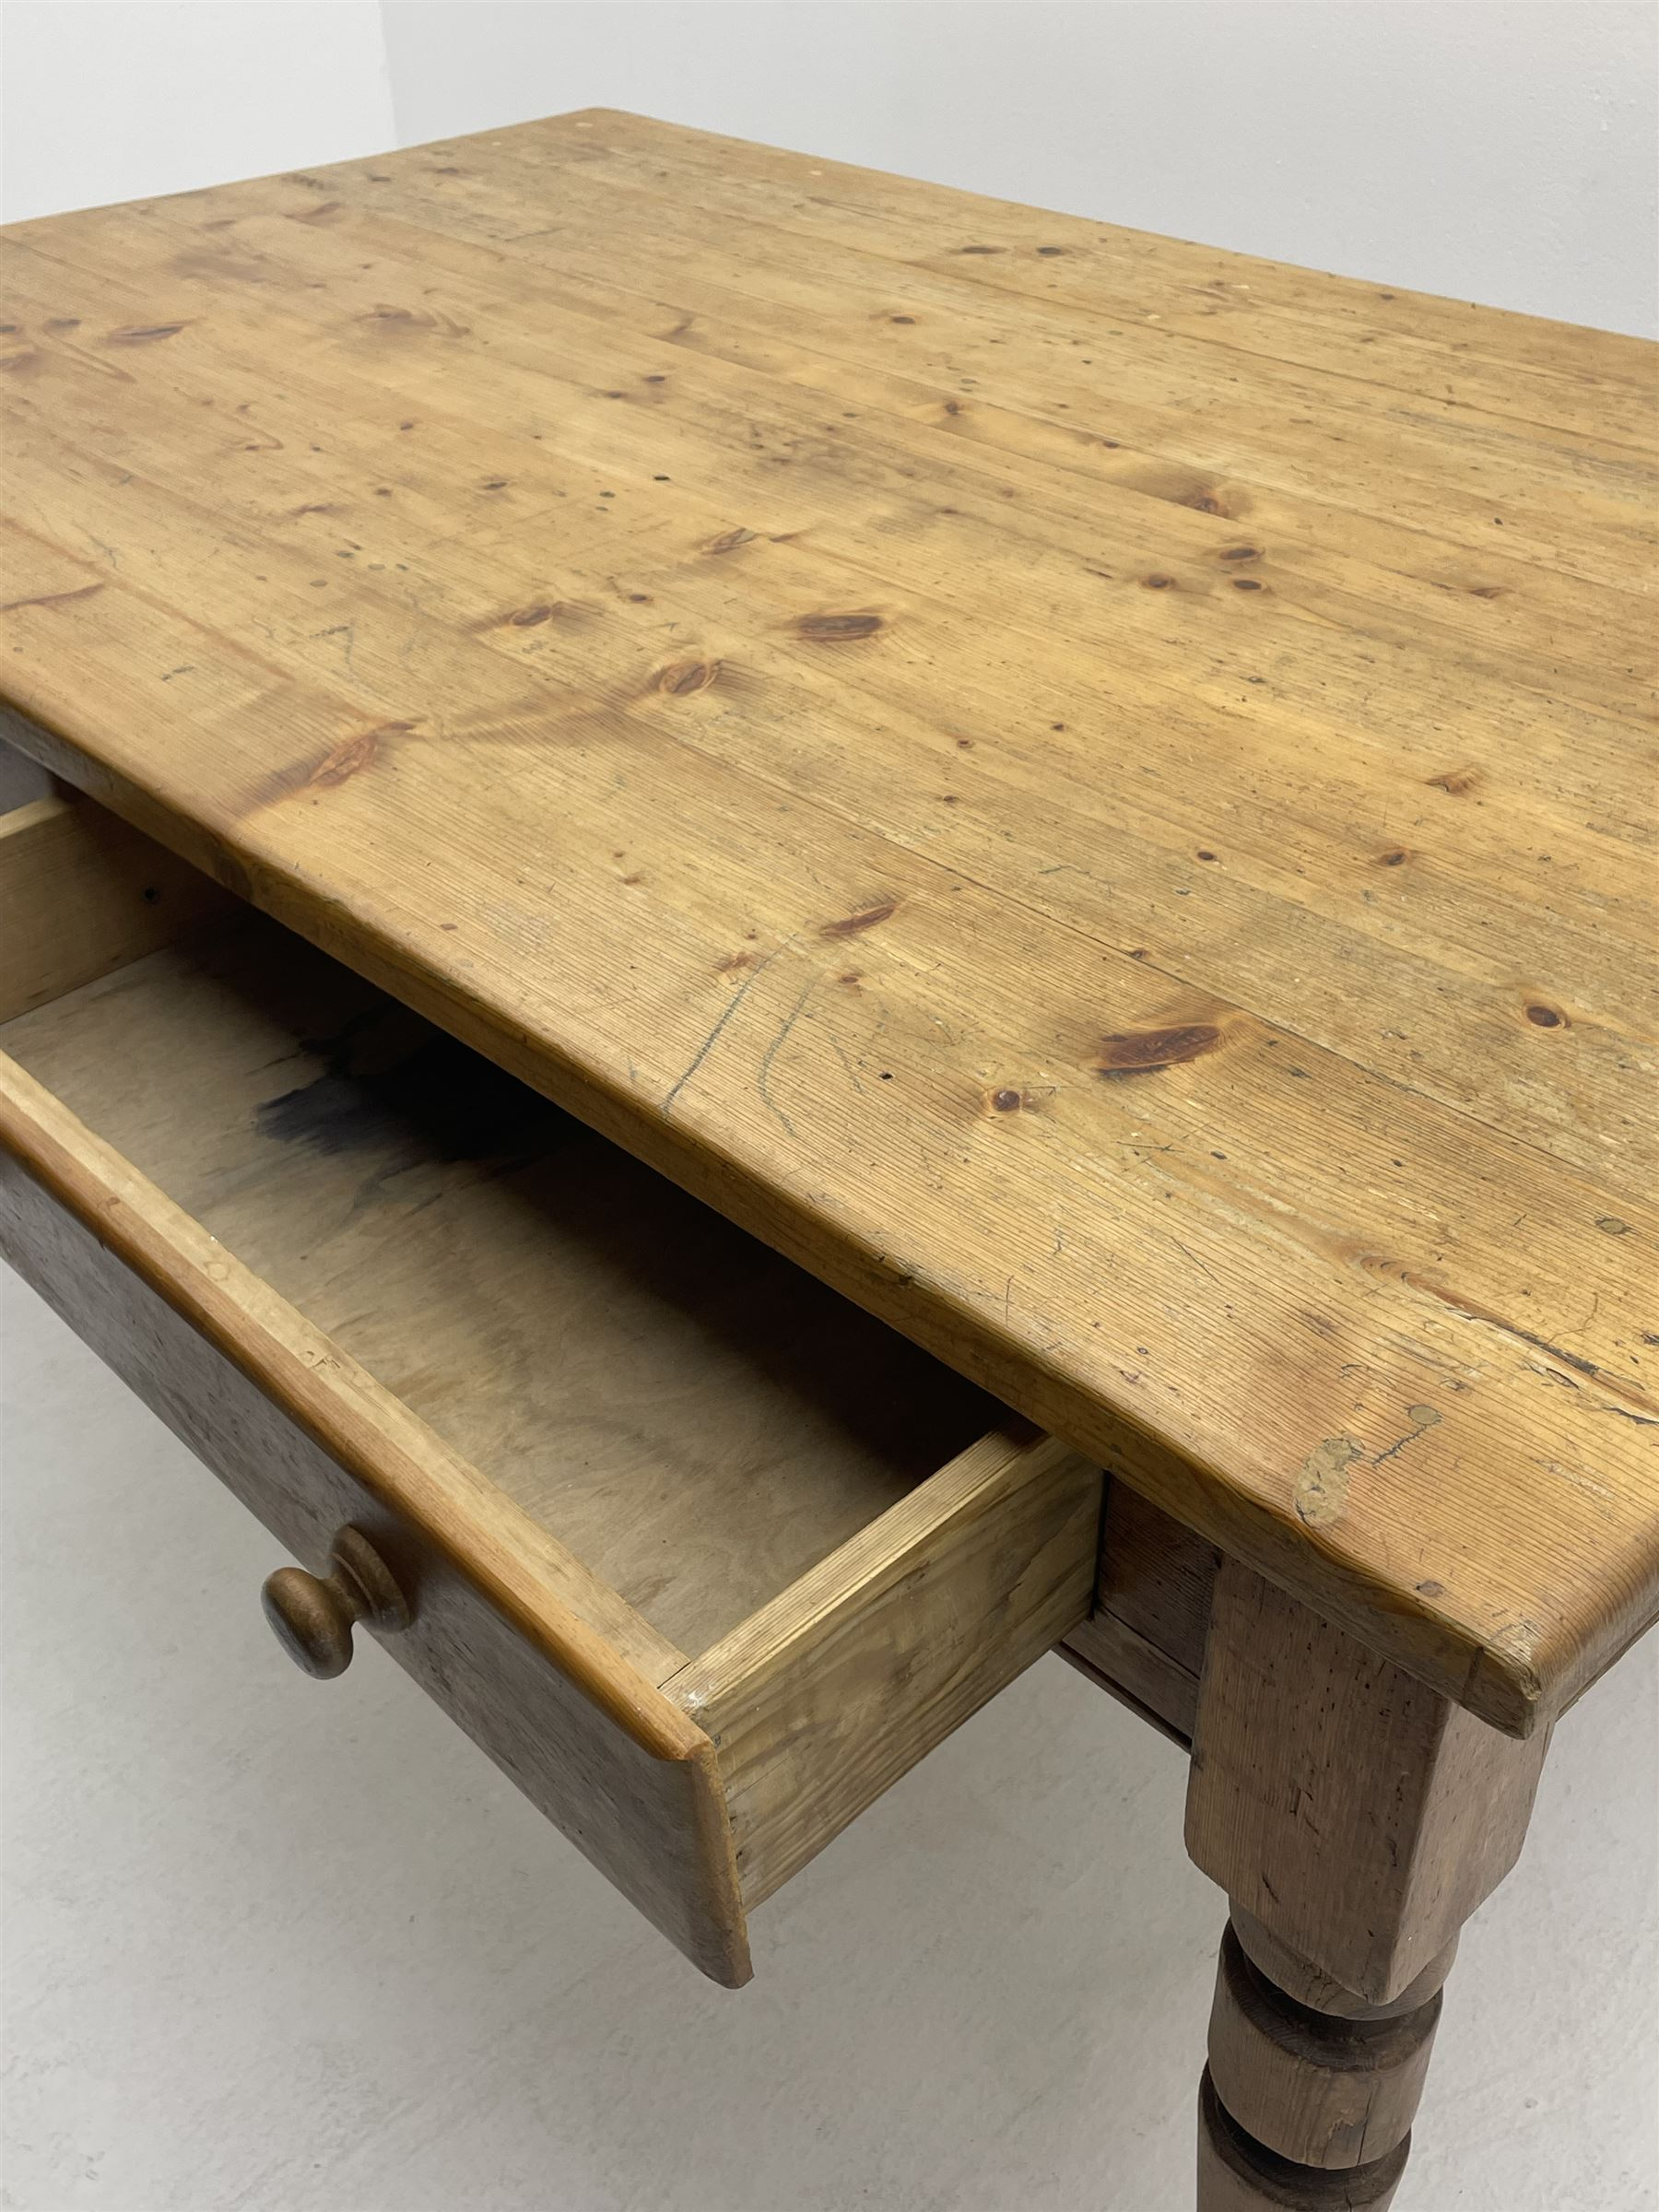 19th century and later pine farmhouse style kitchen dining table - Image 4 of 4